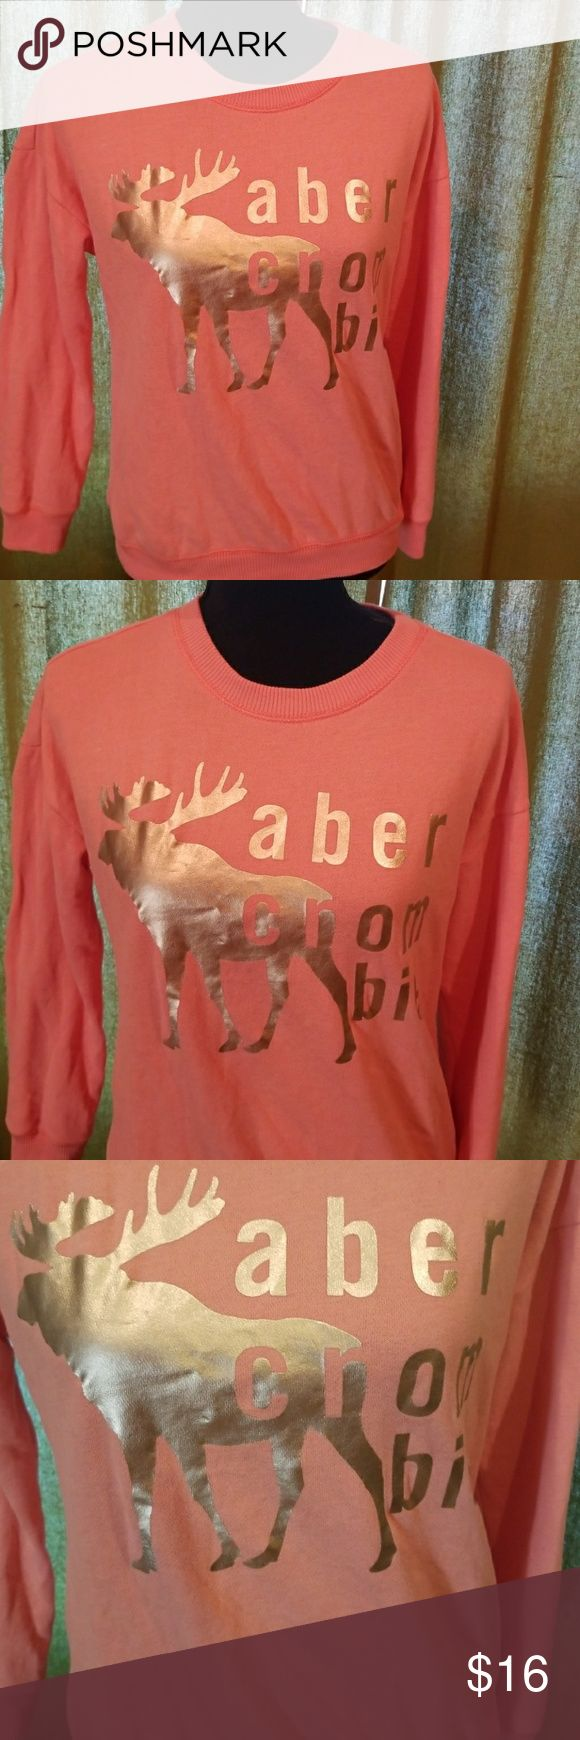 Abercrombie girls peach long sleeve sweater 13/14 Good used condition.  The color is a little lighter peach than shown in pictures.      Box K abercrombie kids Shirts & Tops Sweatshirts & Hoodies